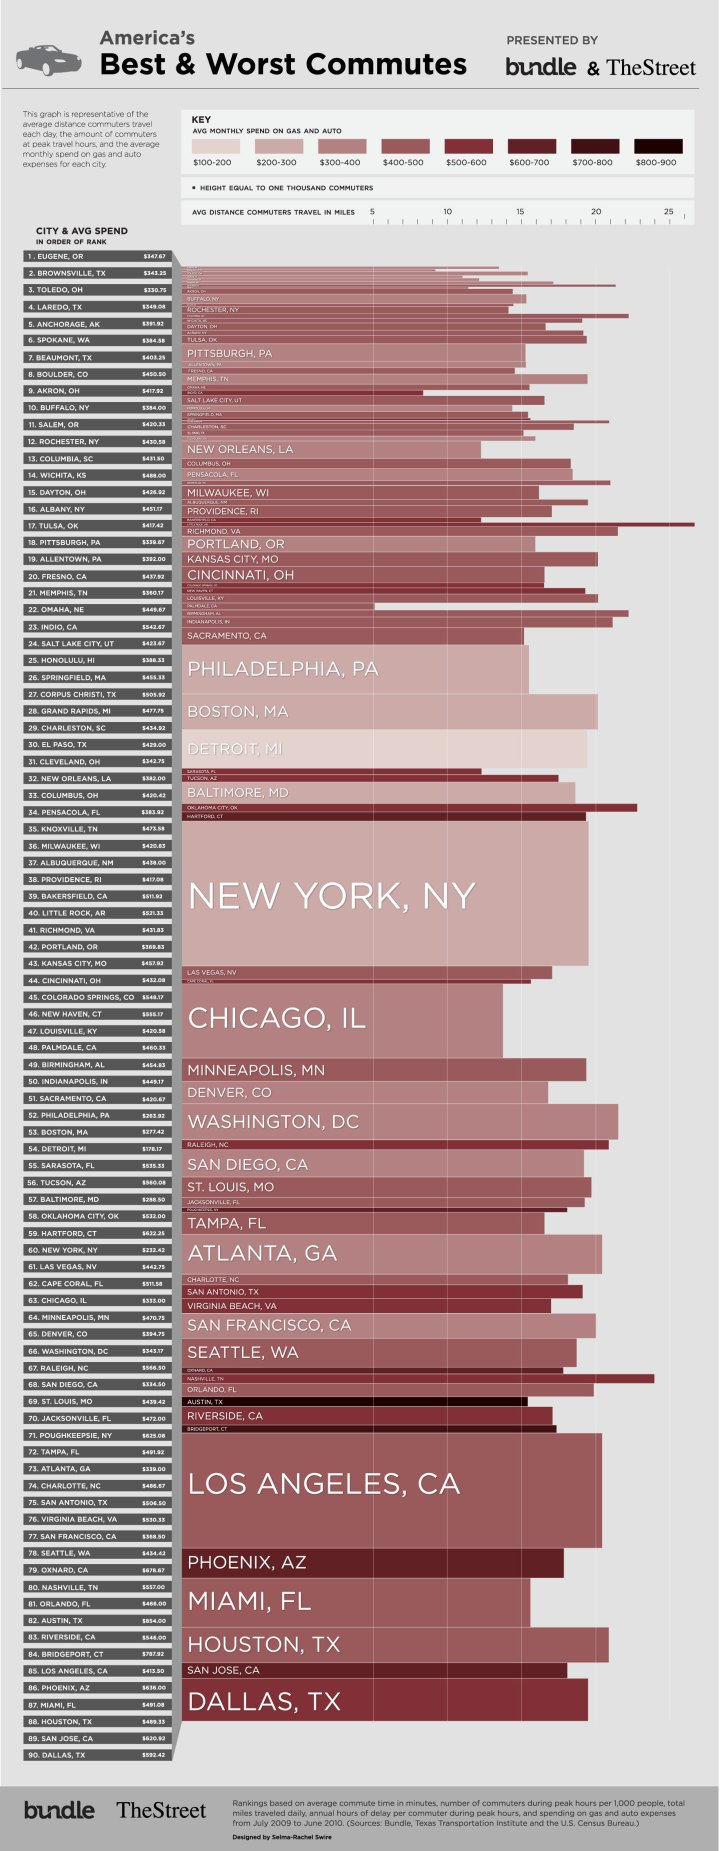 Worst Commutes in the US